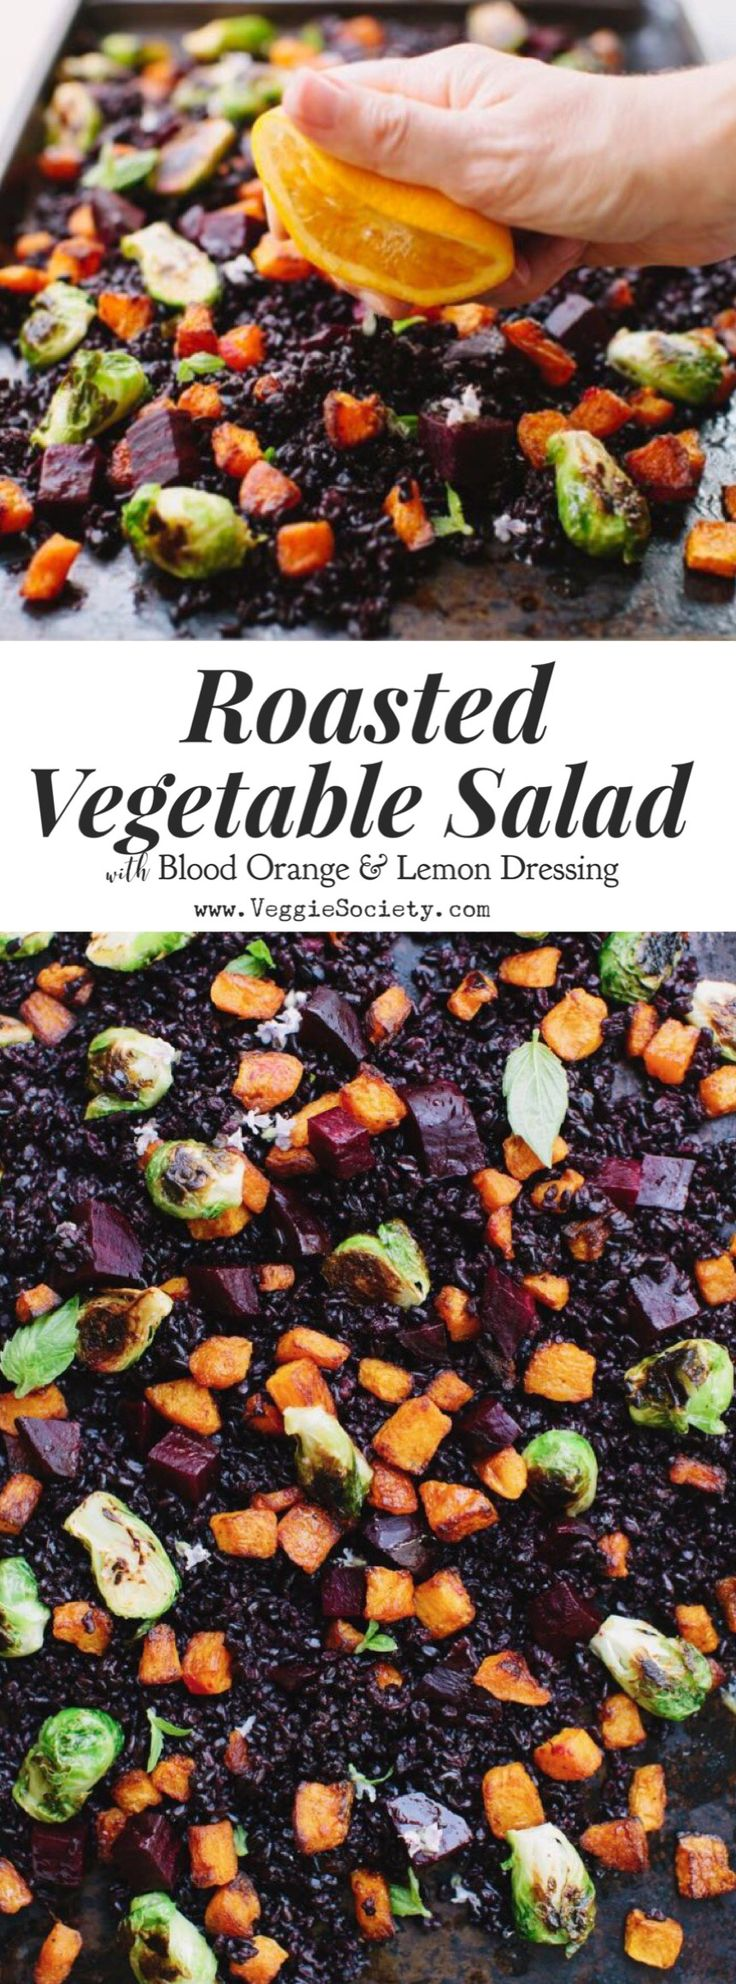 Roasted Vegetable Salad Recipe with Blood Orange and Lemon Dressing. Heirloom black rice topped with roasted beets, butternut squash and Brussel sprouts | VeggieSociety.com @VeggieSociety